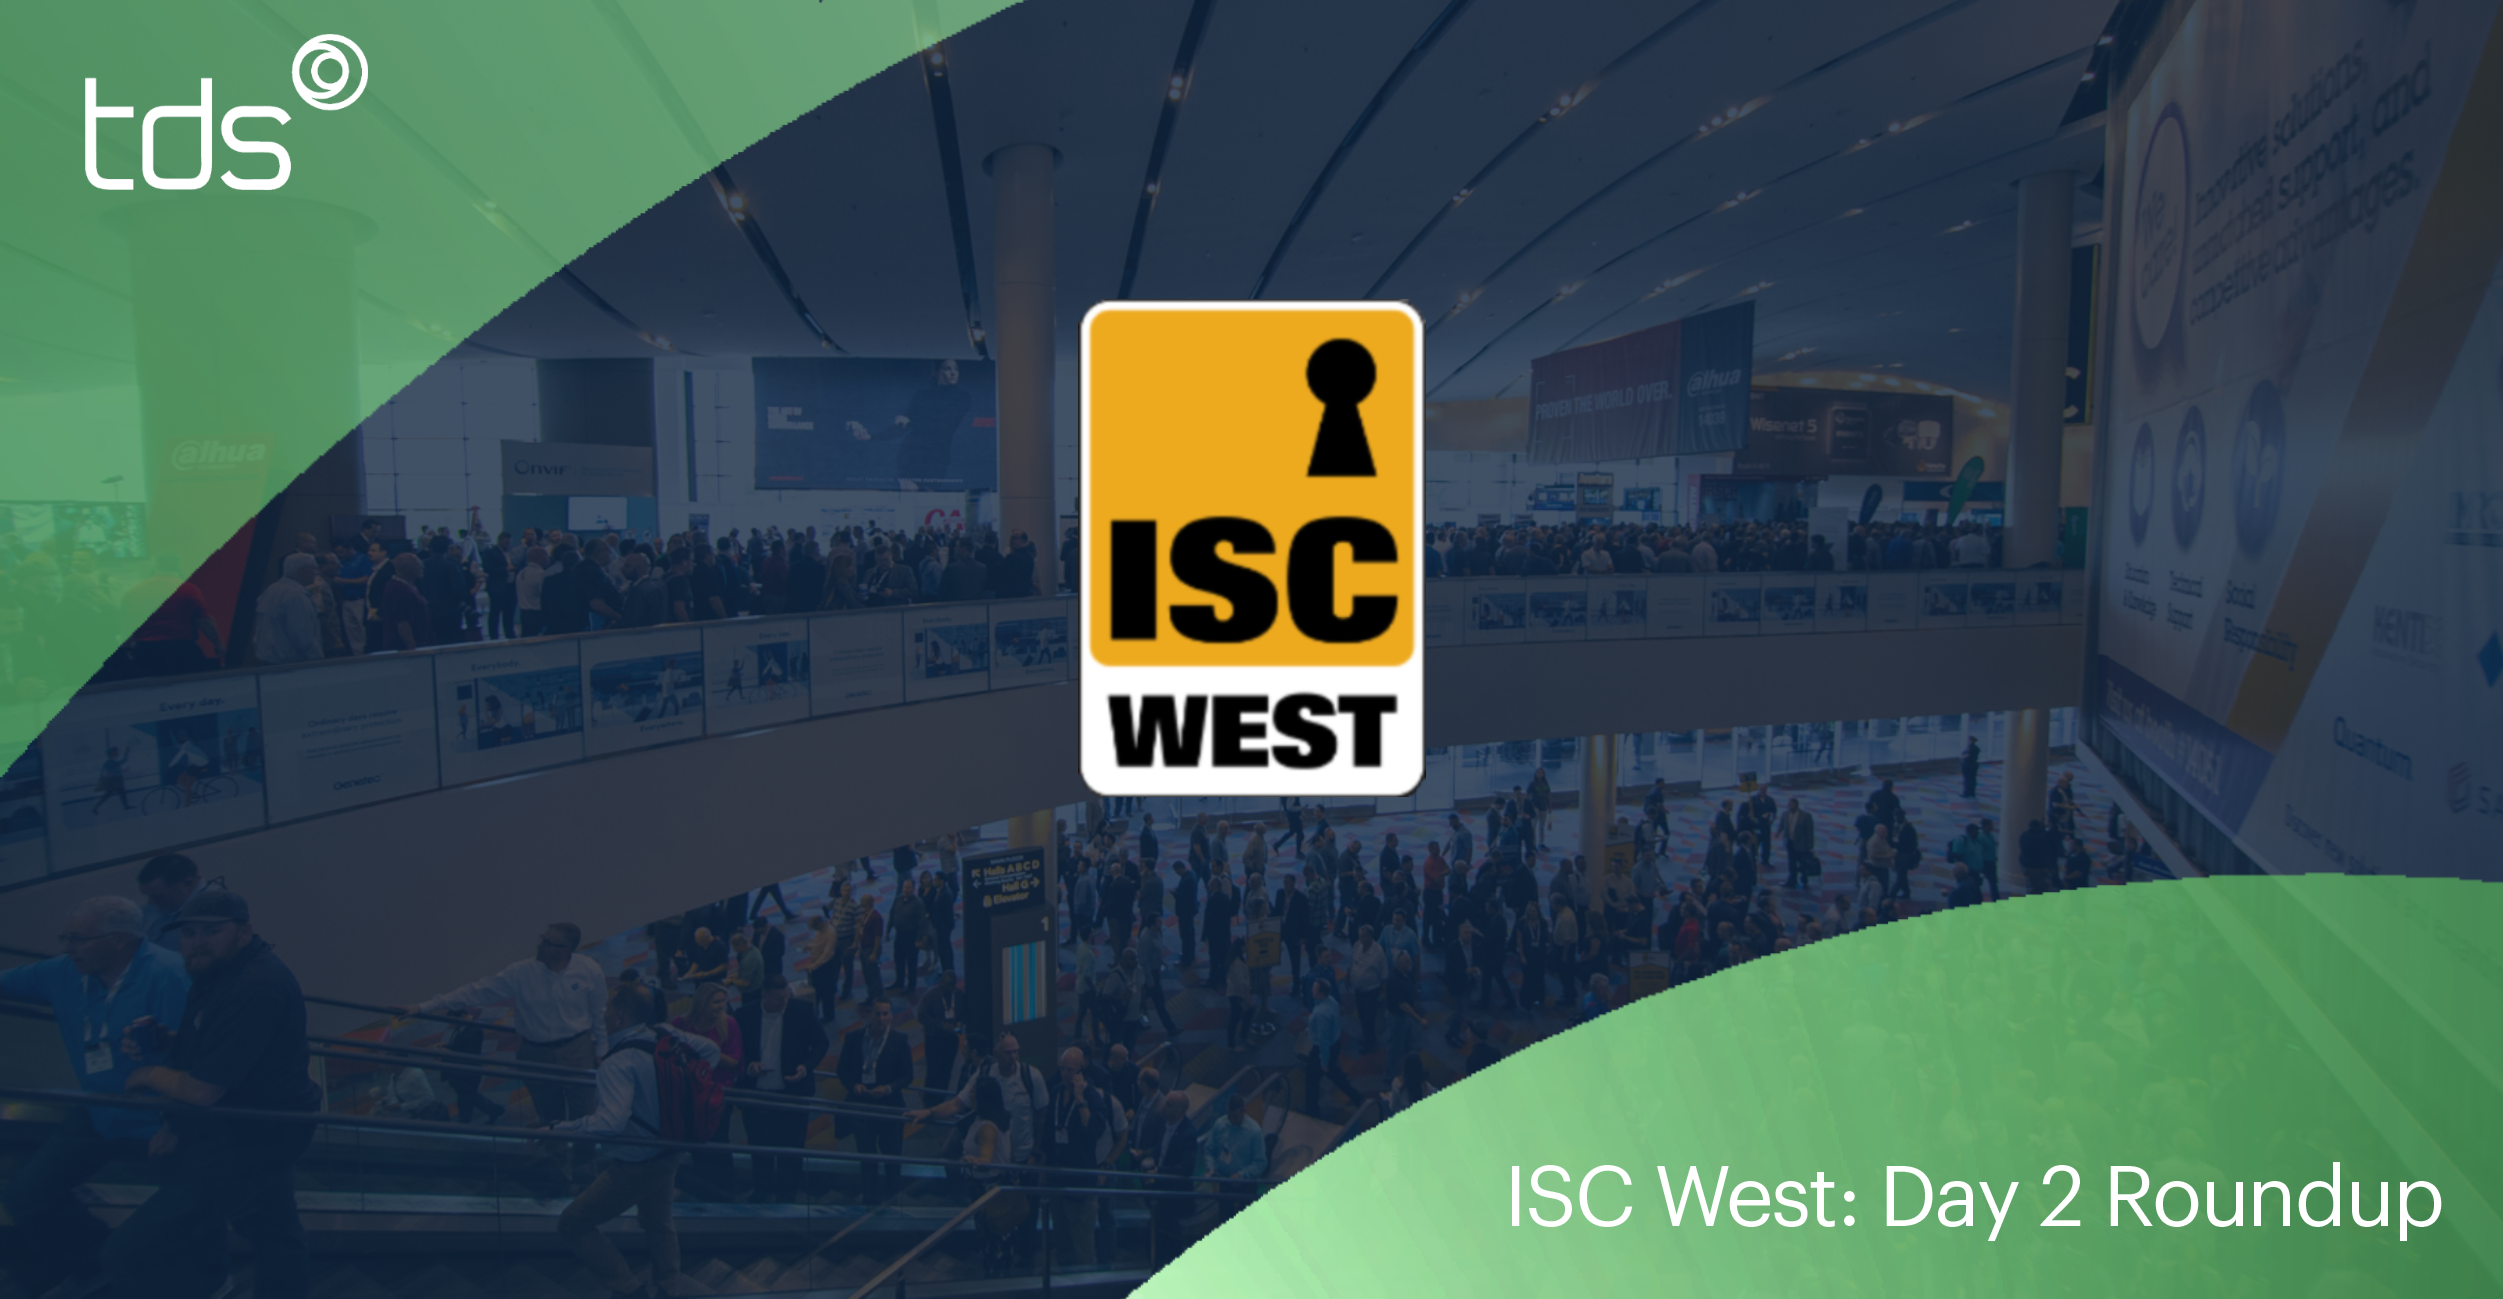 ISC-West-Day-2-Roundup